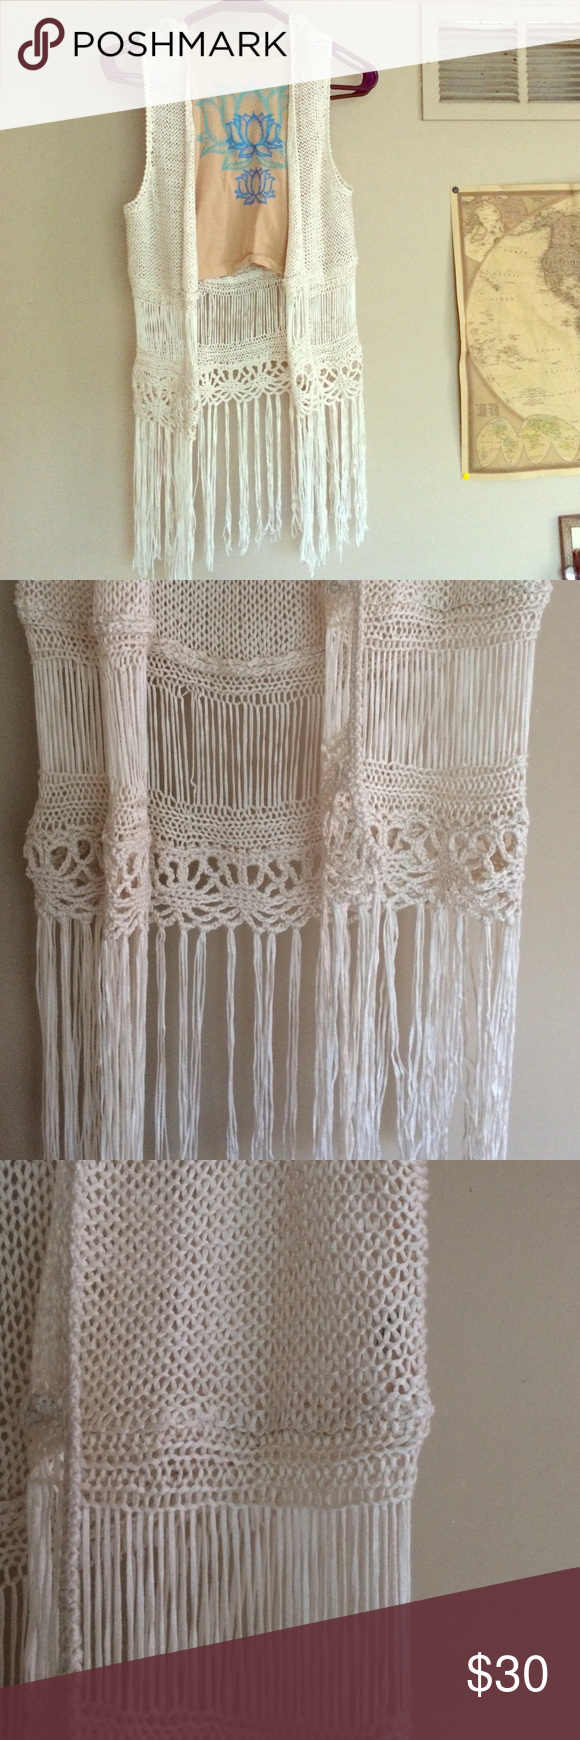 Bohemian Fringe Vest Beautiful Boho best! Perfect for your gypsy soul! Size is small. Brand is L.A. Hearts, free people for exposure  Creme color, no tears, no stains. Free People Tops